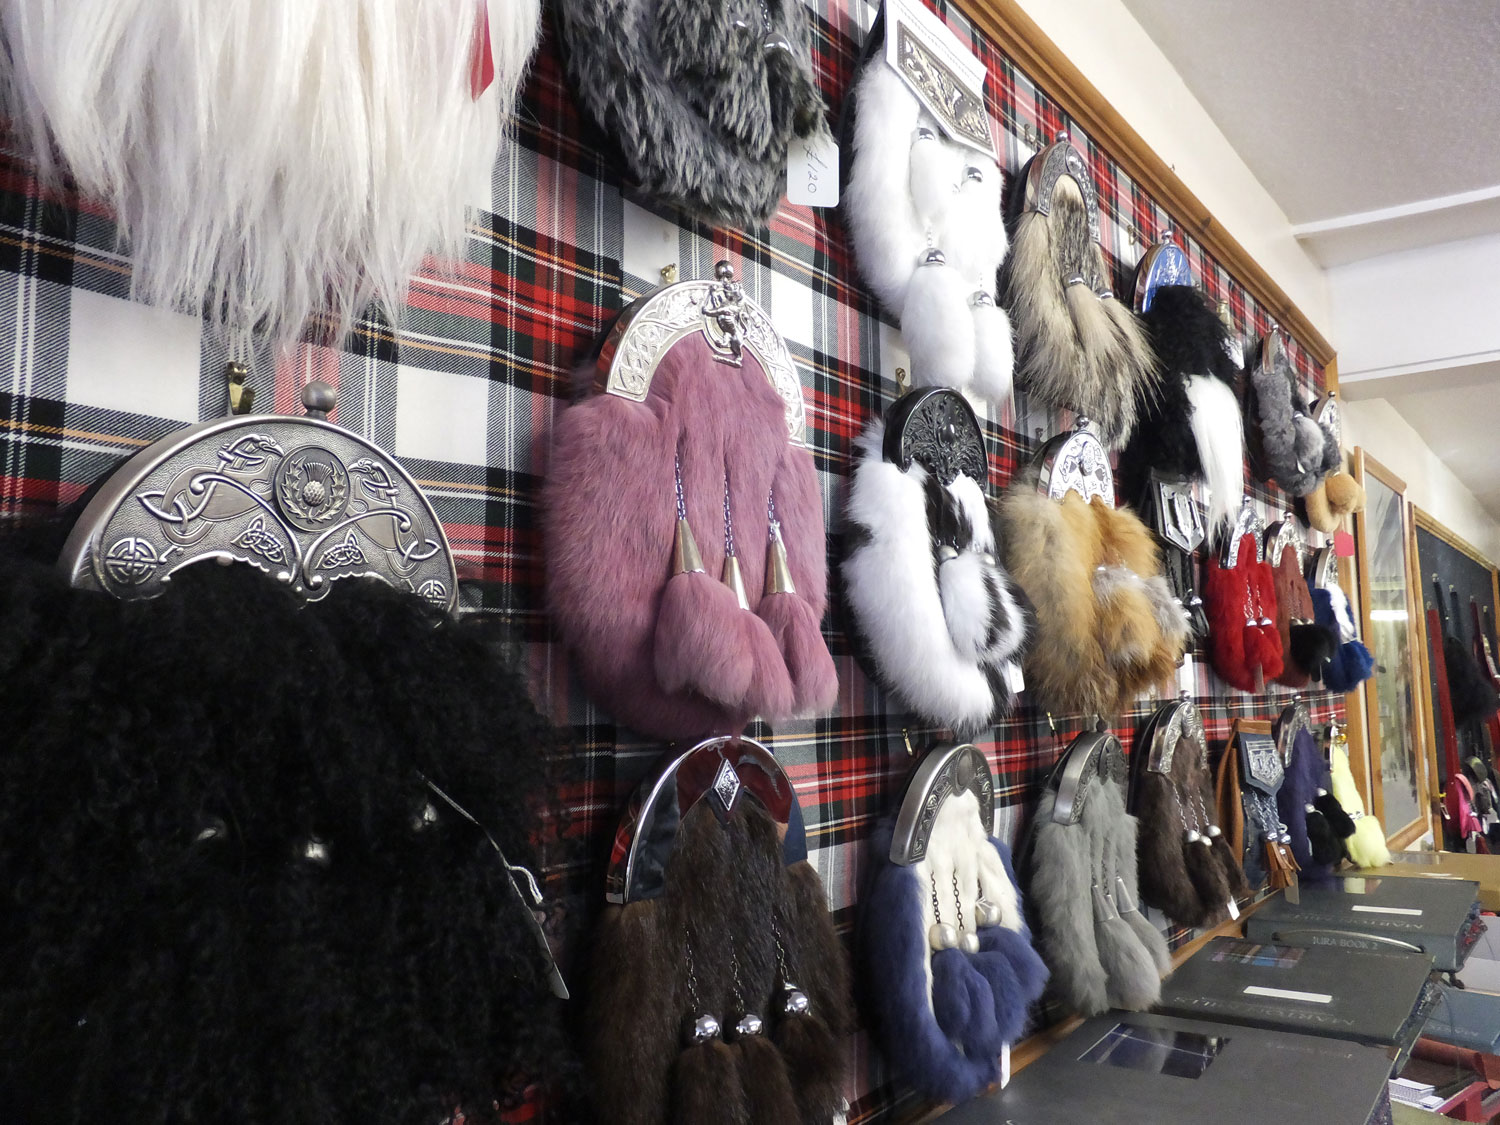 Photo taken in Janet Eagleton MBE and Son, Kilt and Sporran Makers Shop, Perth, Scotland. 8/31/13